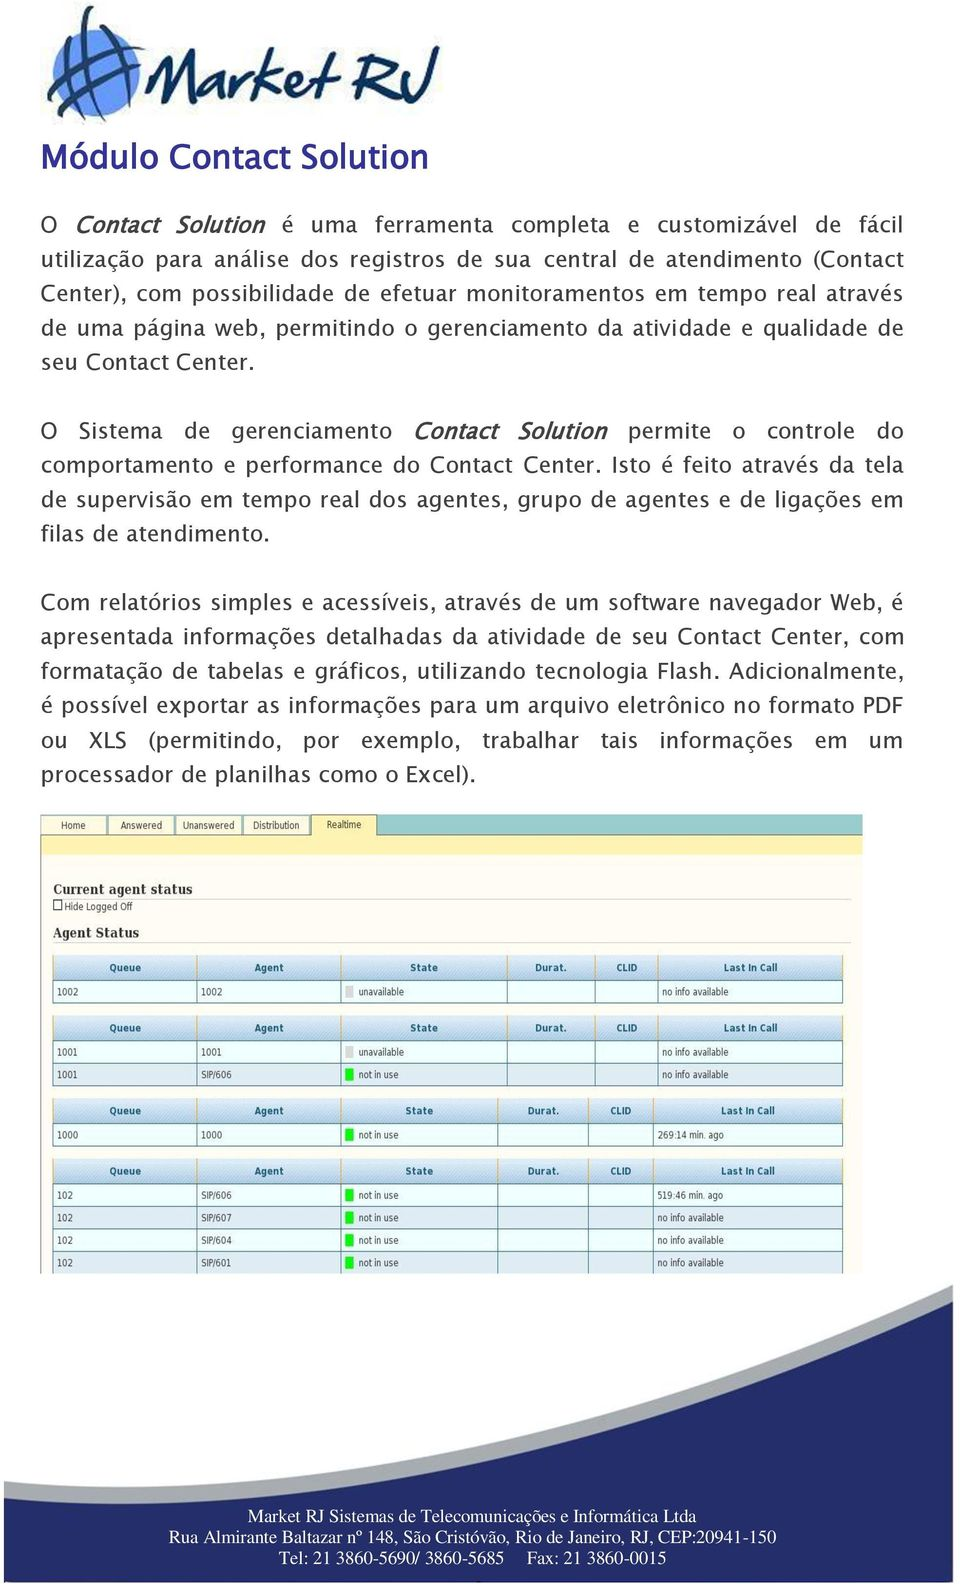 O Sistema de gerenciamento Contact Solution permite o controle do comportamento e performance do Contact Center.